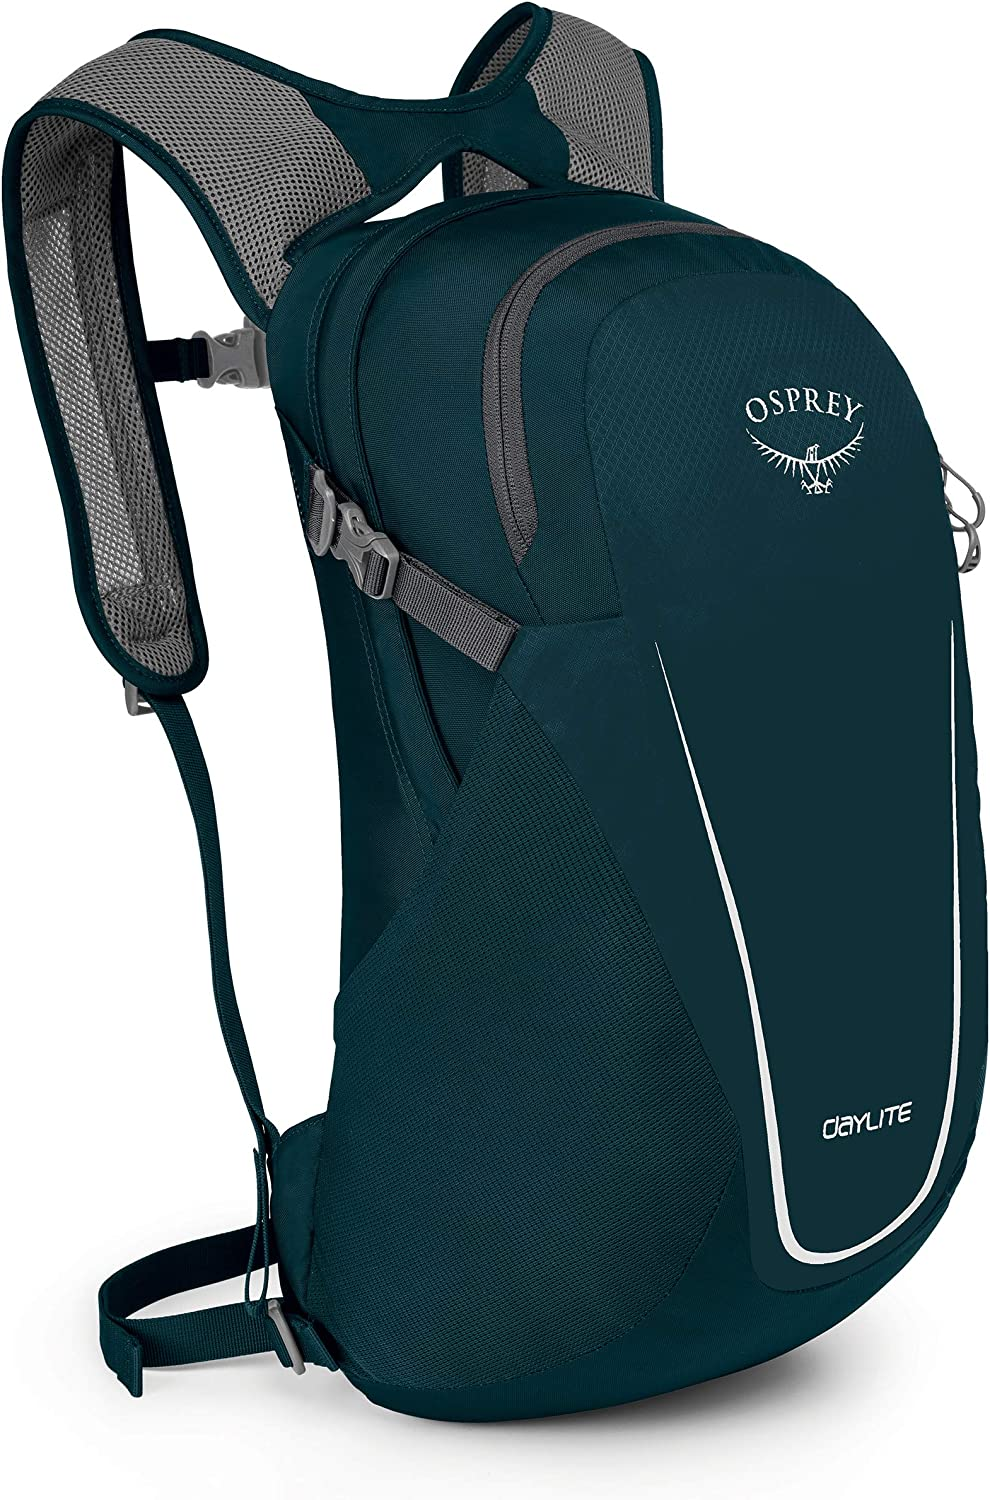 Image of the Osprey Daylite Backpack in blue-green color on a white background.